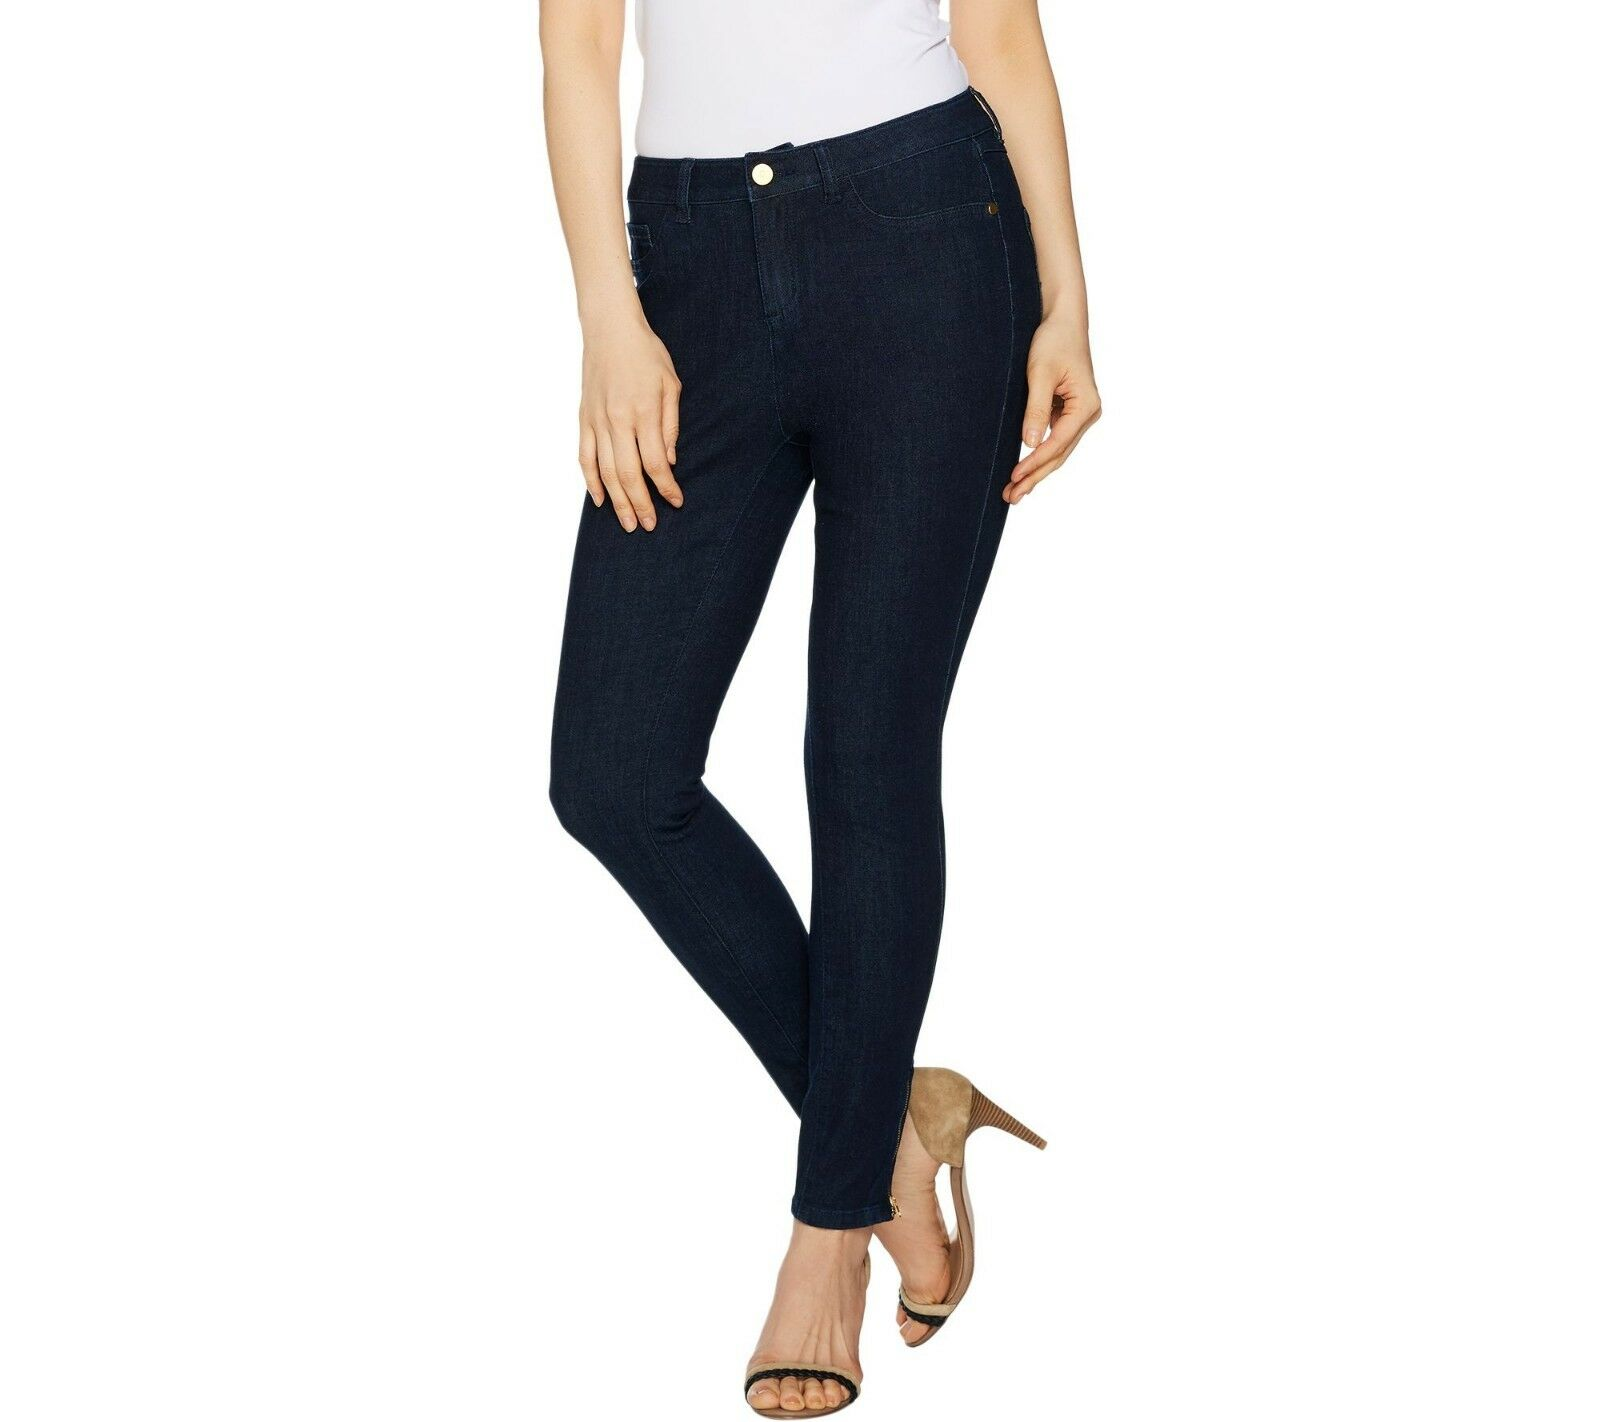 G.I.L.I. Women's Ankle Length Zip Jeans Pull-on Pants Dark Rinse 18W Size QVC